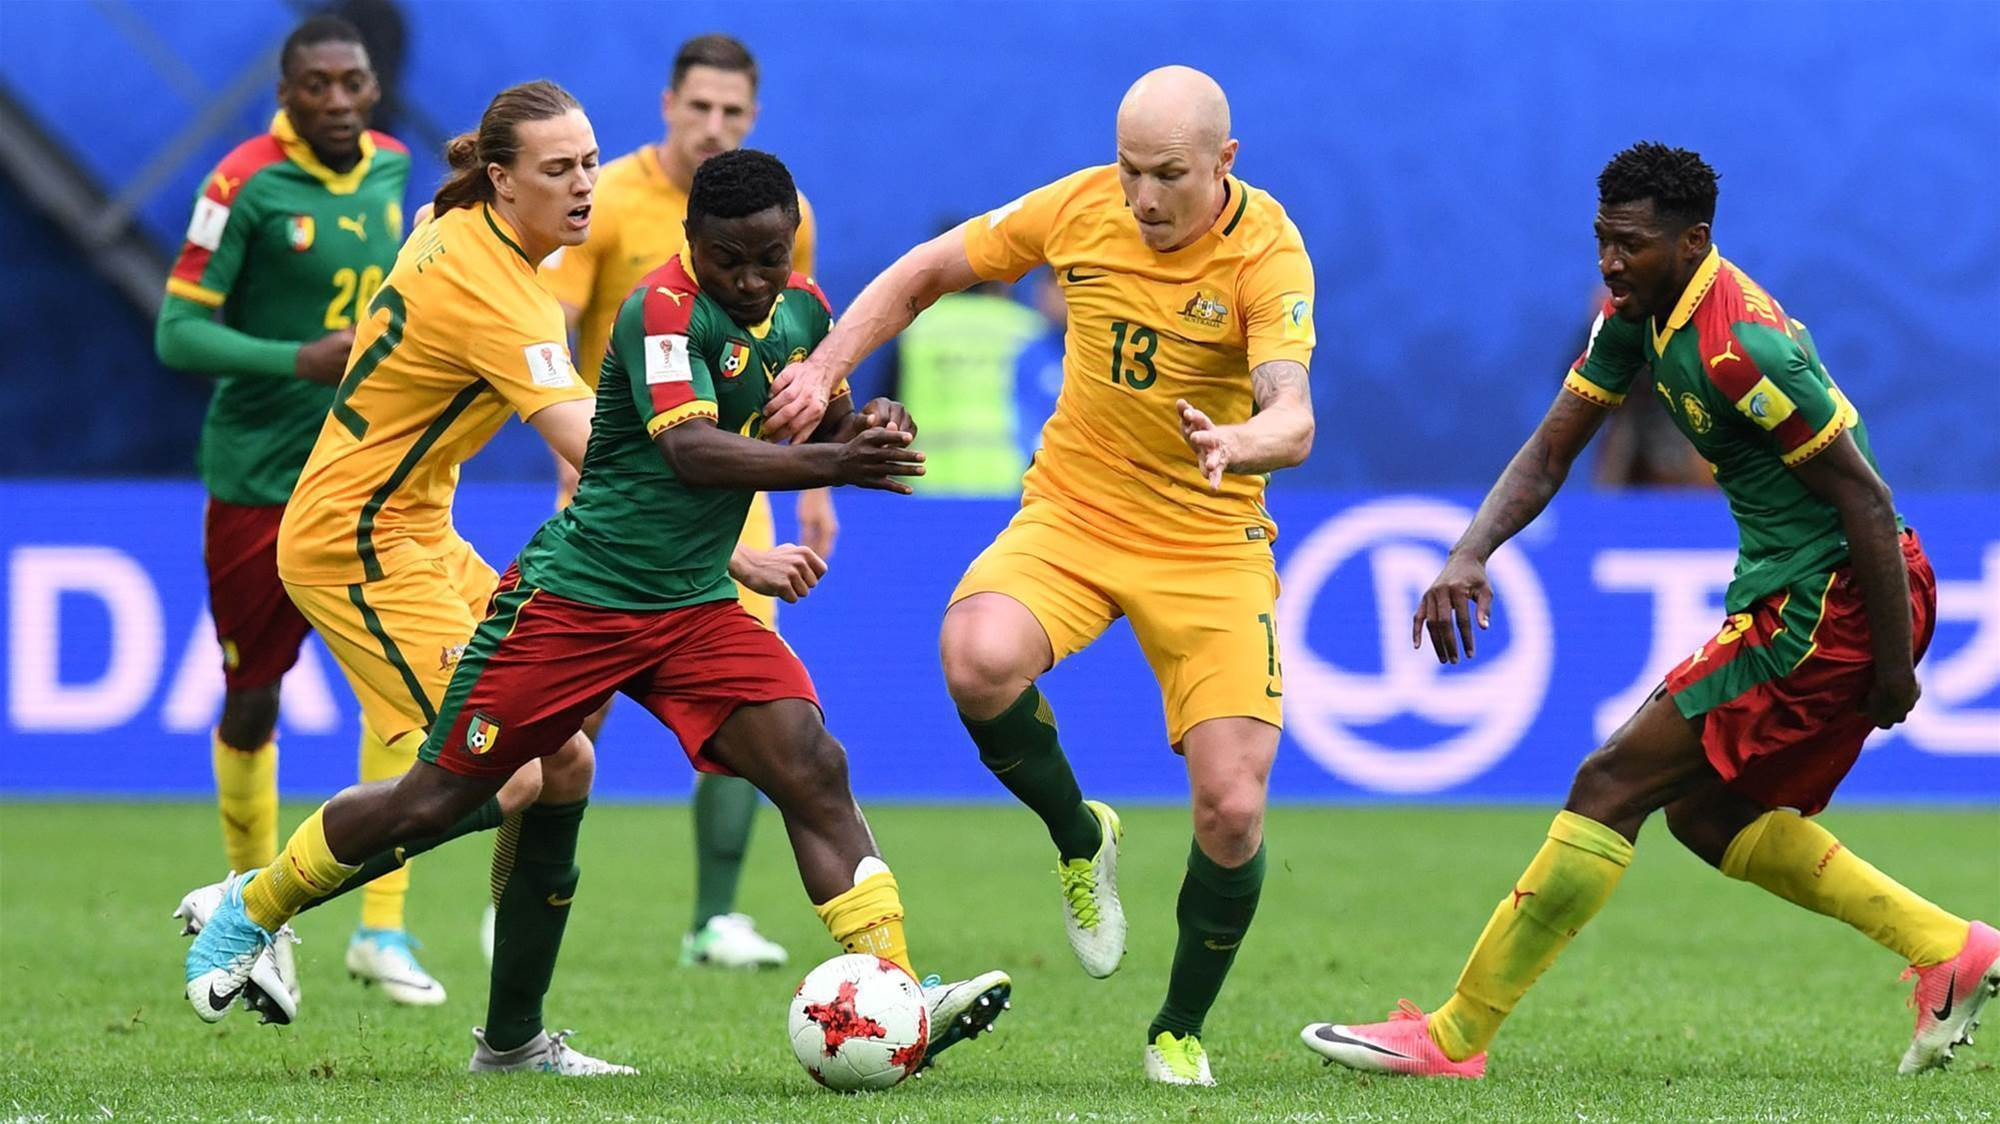 Match analysis: Australia v Cameroon